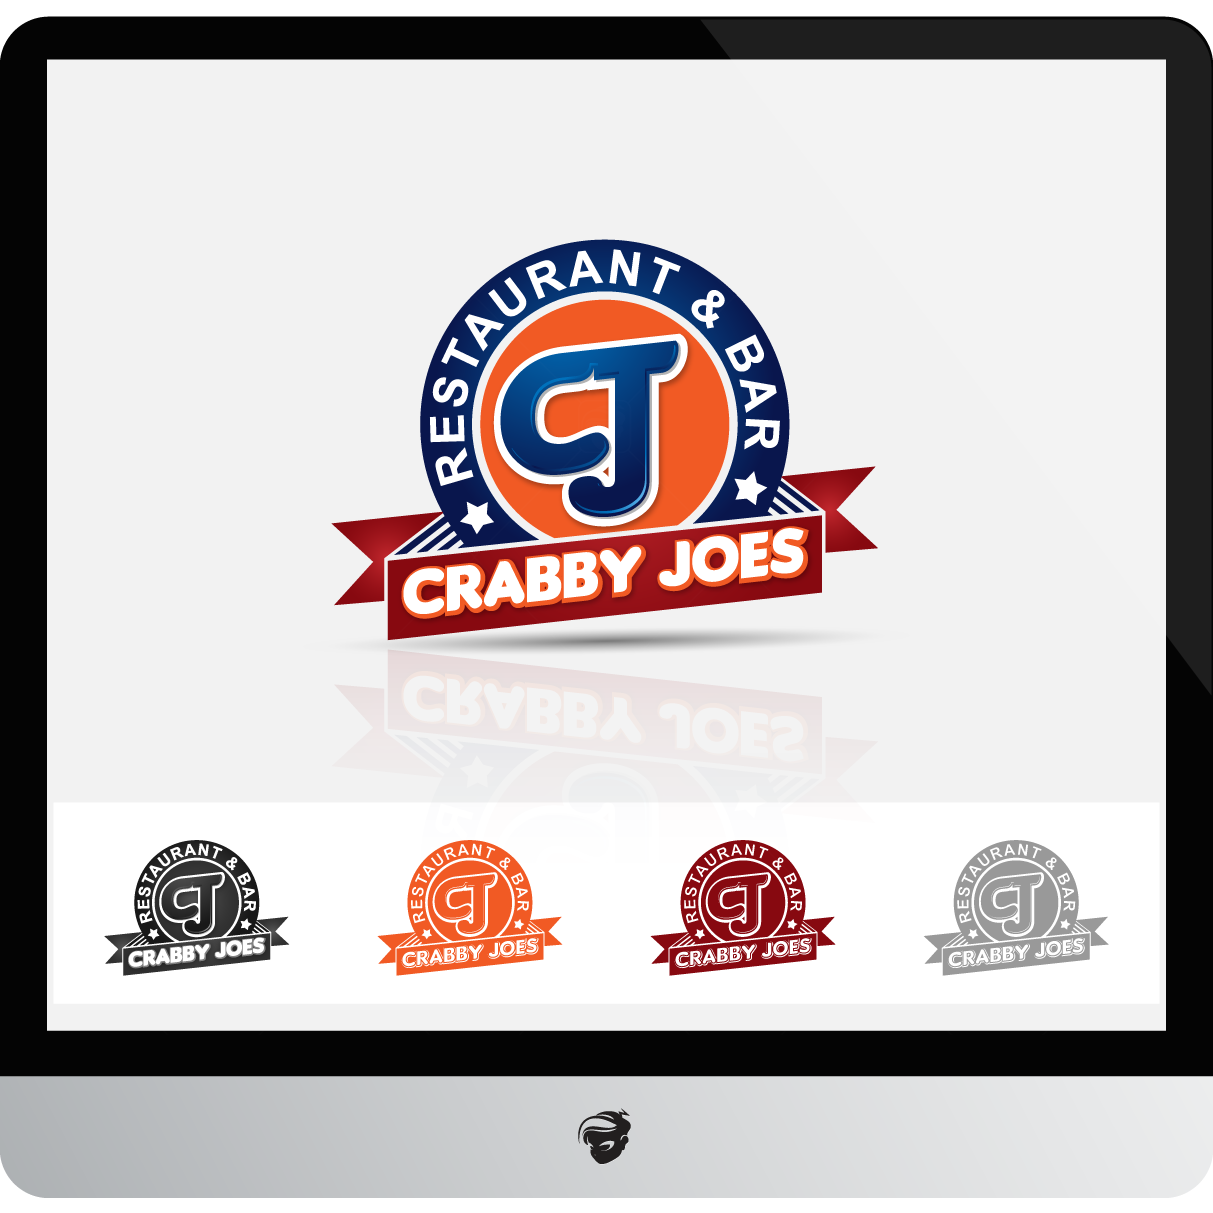 Logo Design by zesthar - Entry No. 55 in the Logo Design Contest Inspiring Logo Design for Cj's.